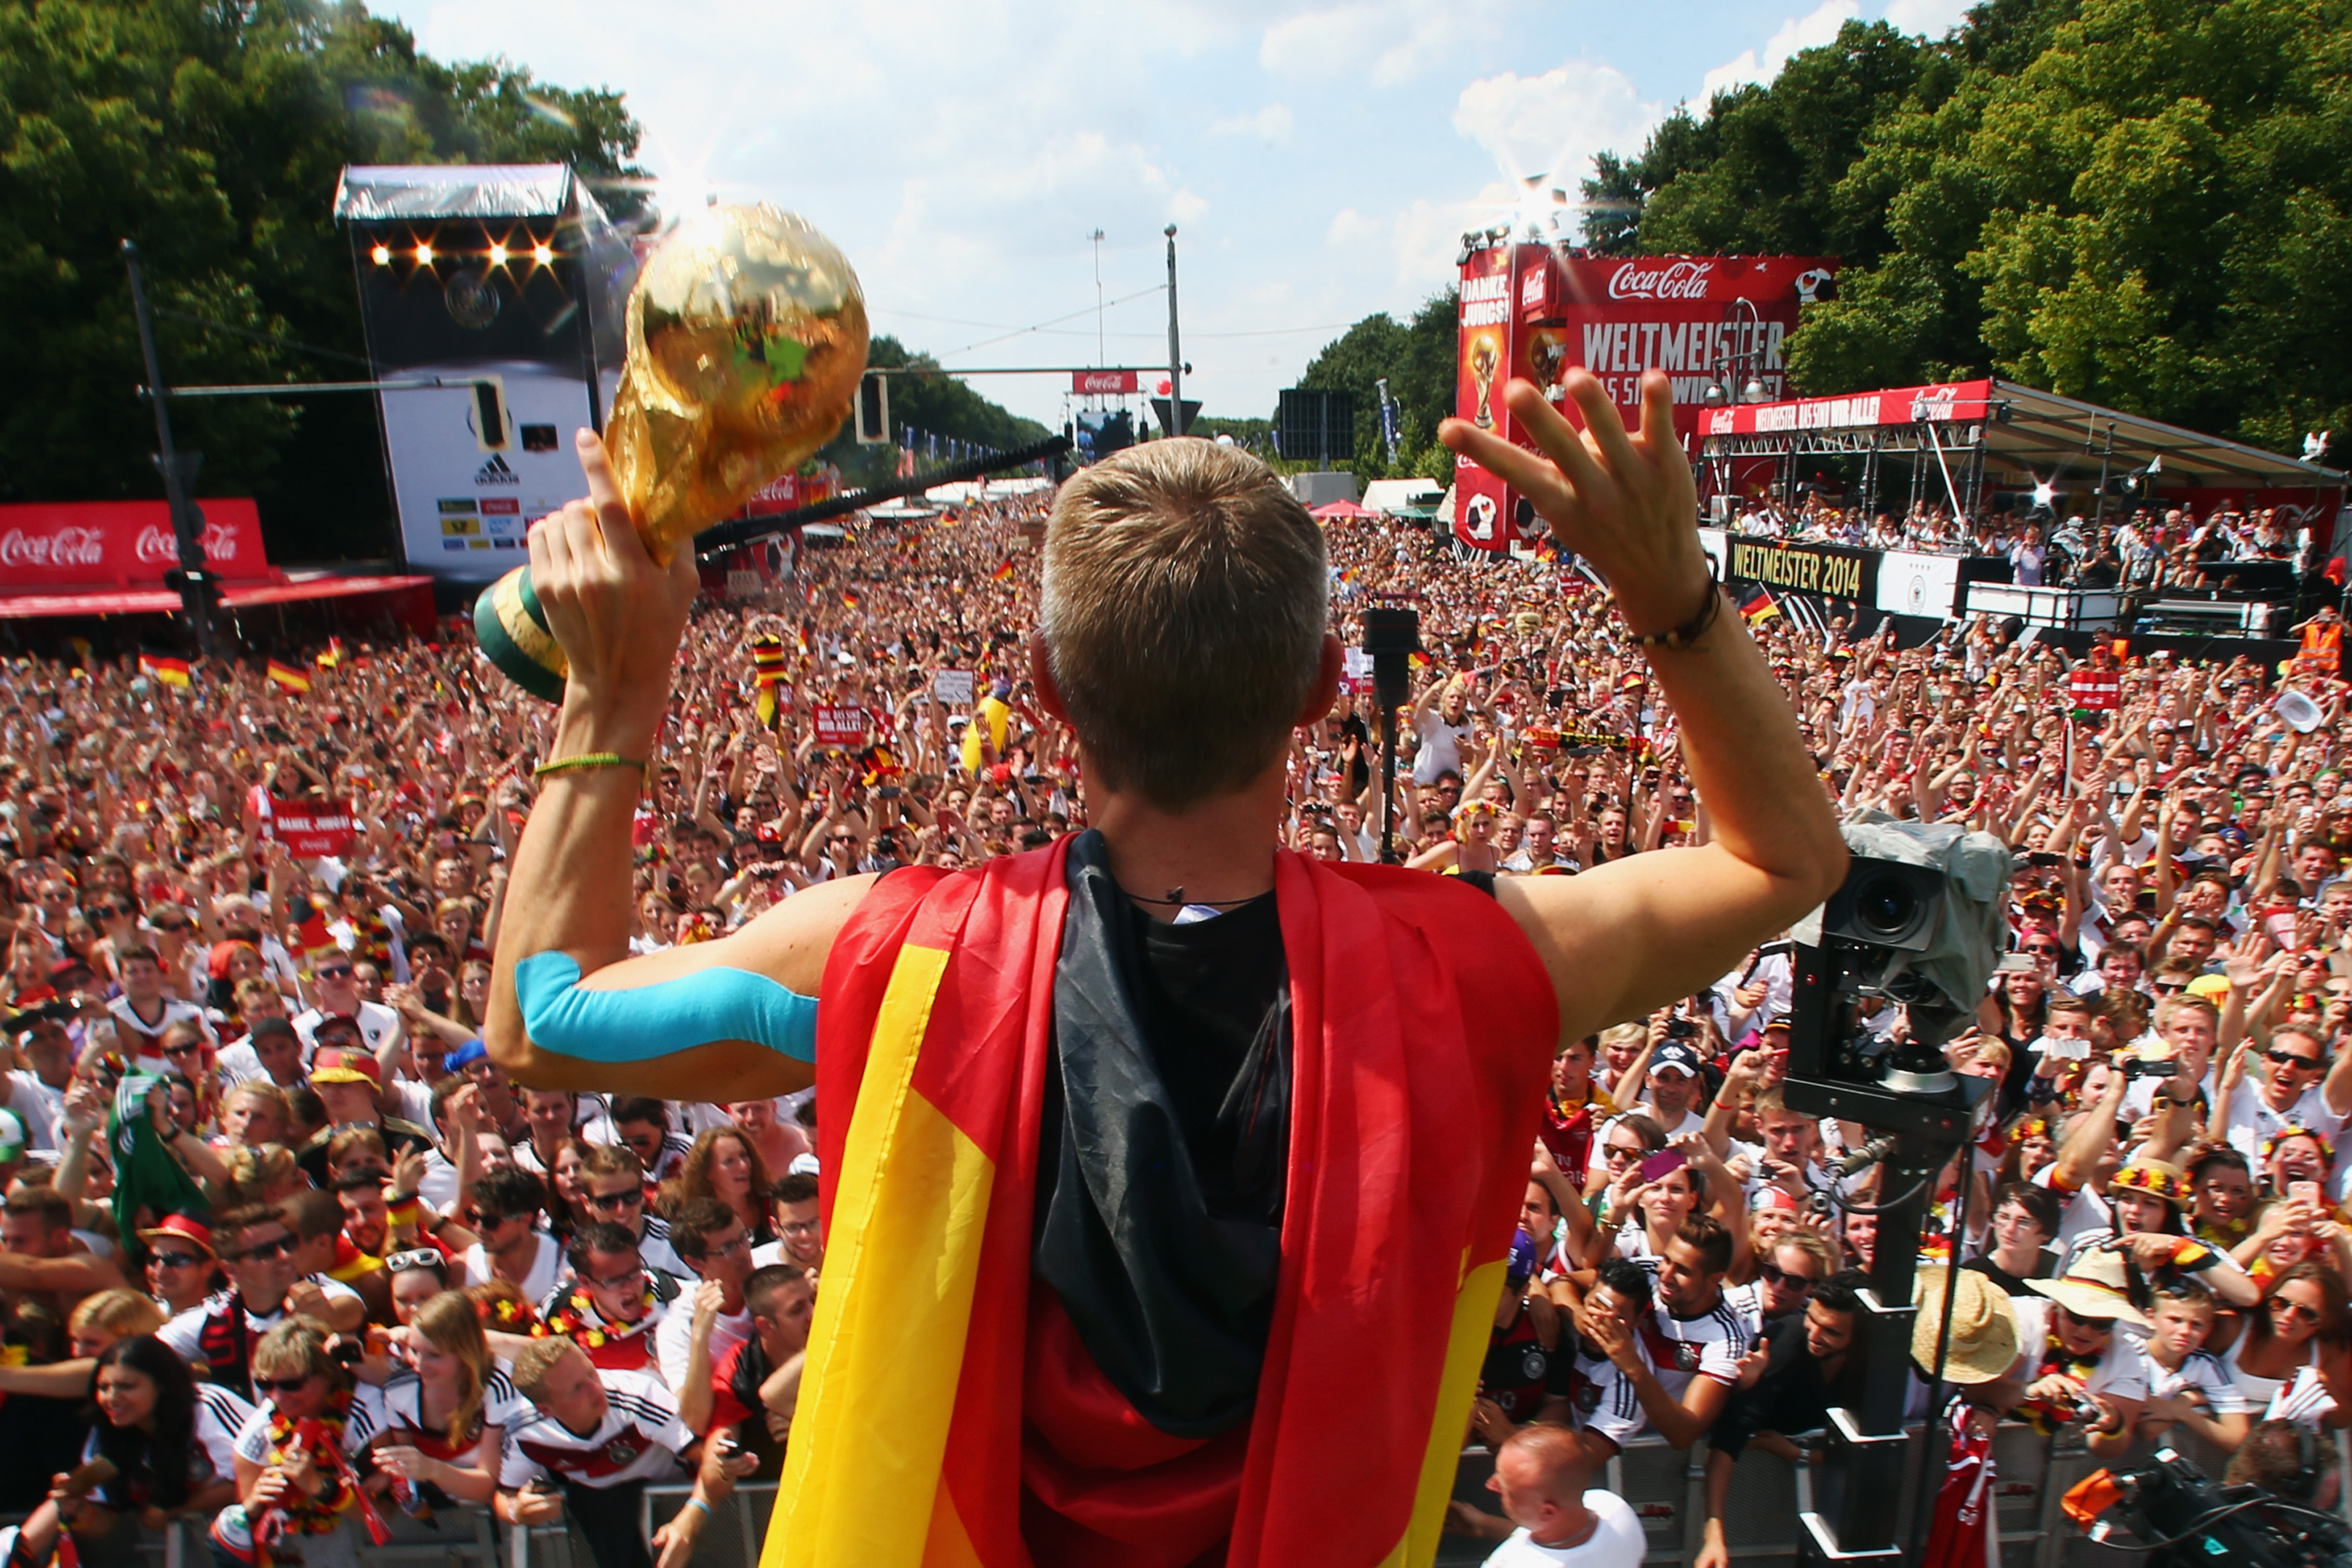 Bastian celebrates with his German army....